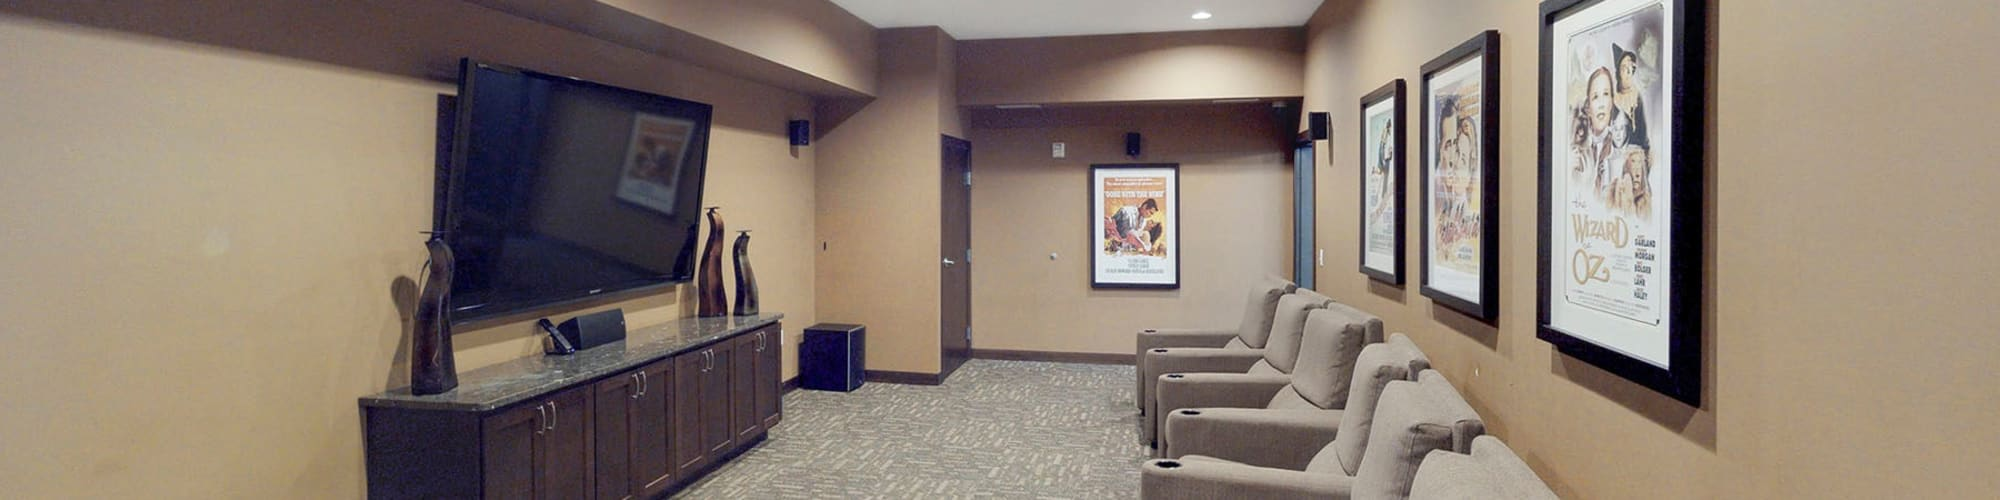 Reviews of Oaks Station Place in Minneapolis, Minnesota